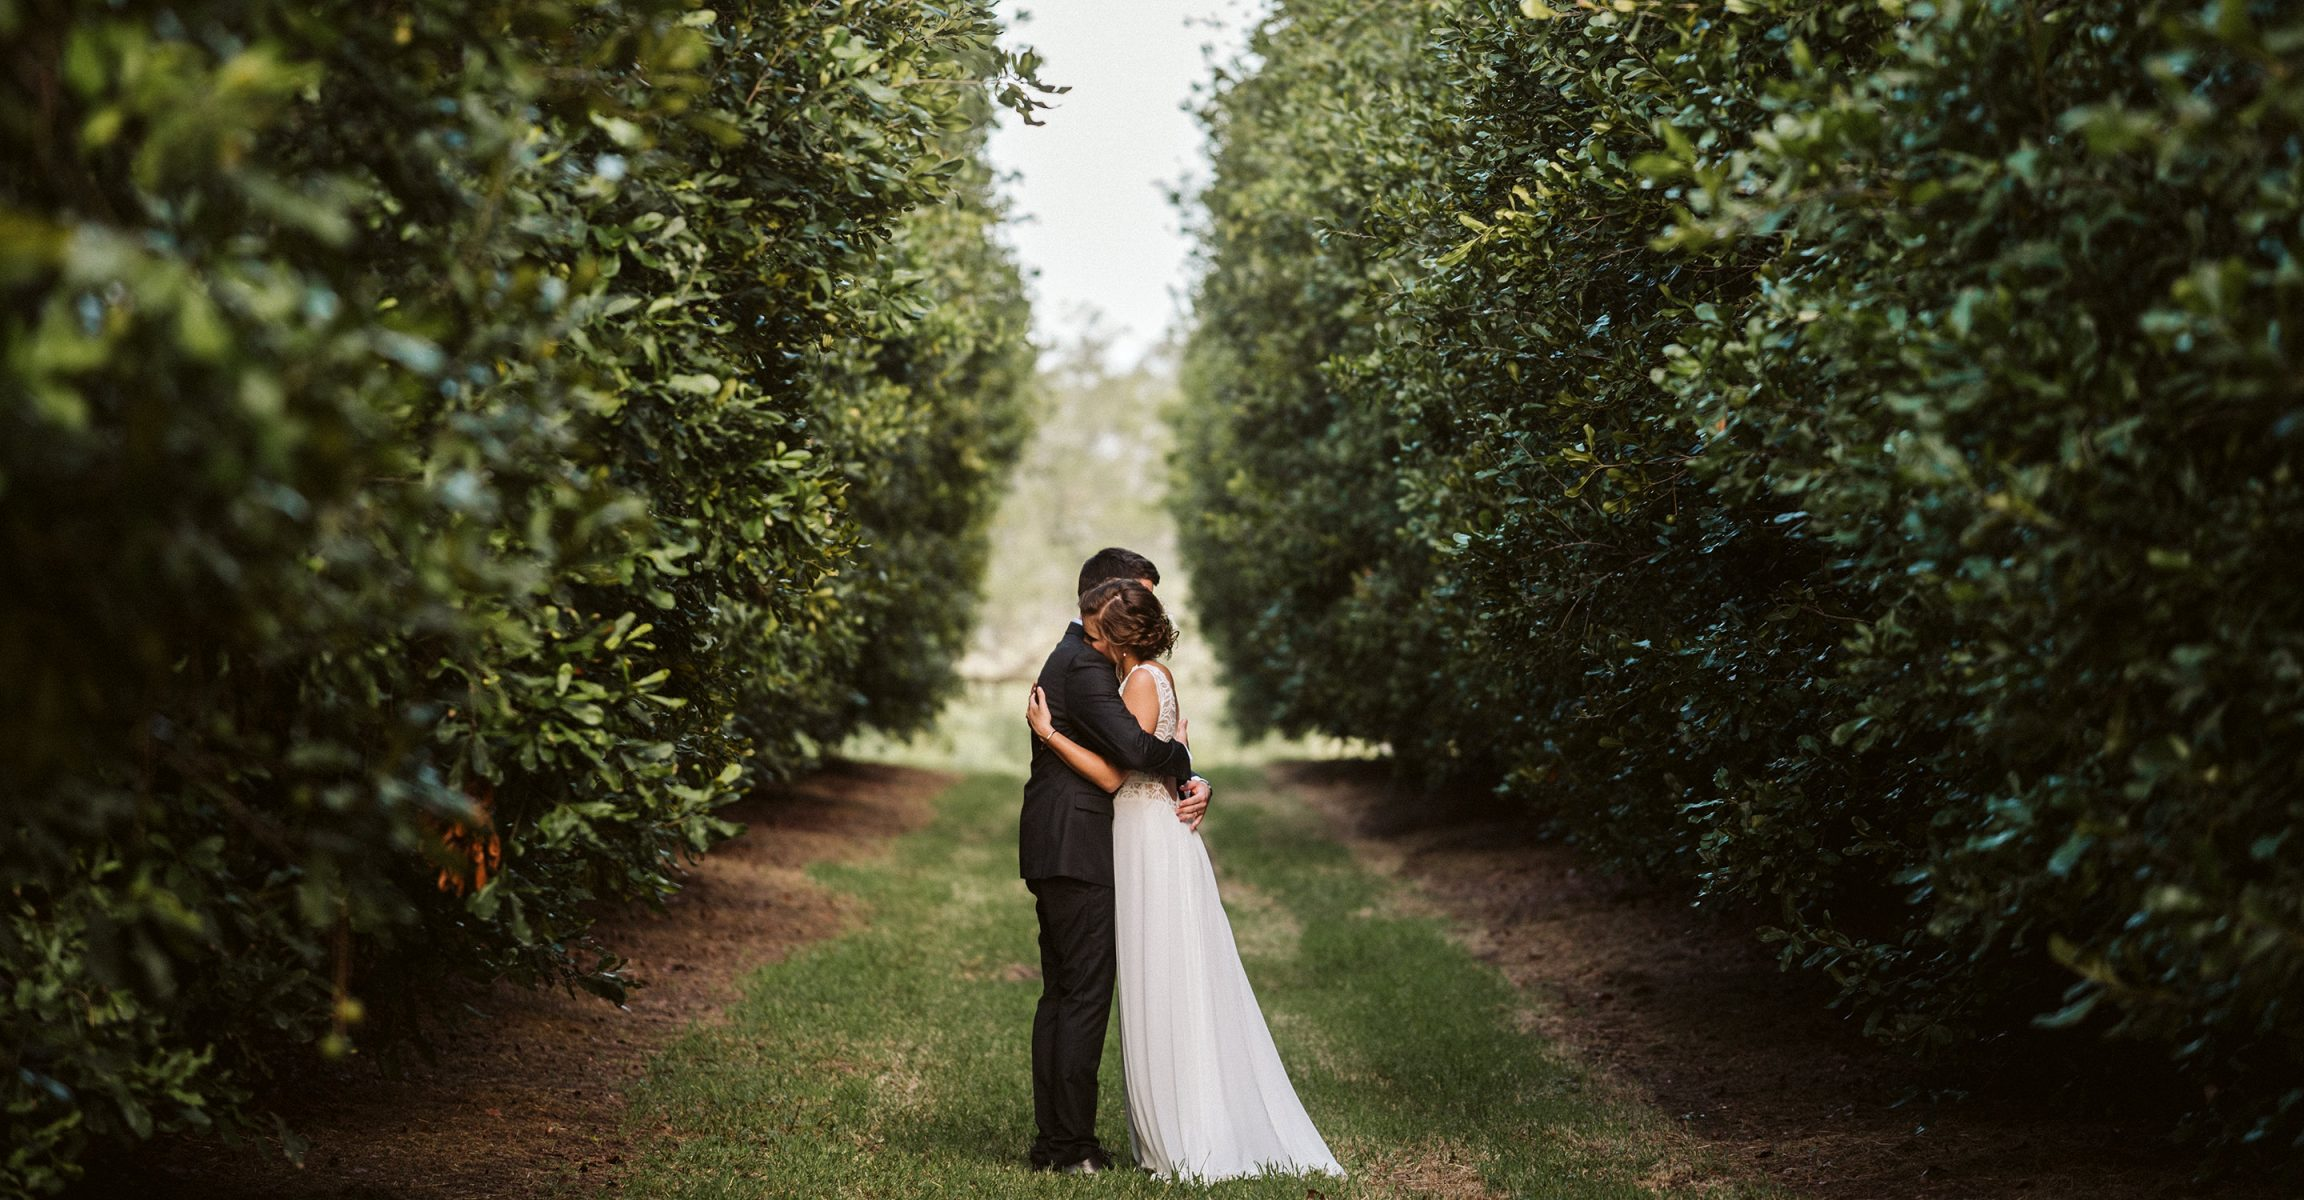 Bride and Groom hugging in Macadamia Orchard